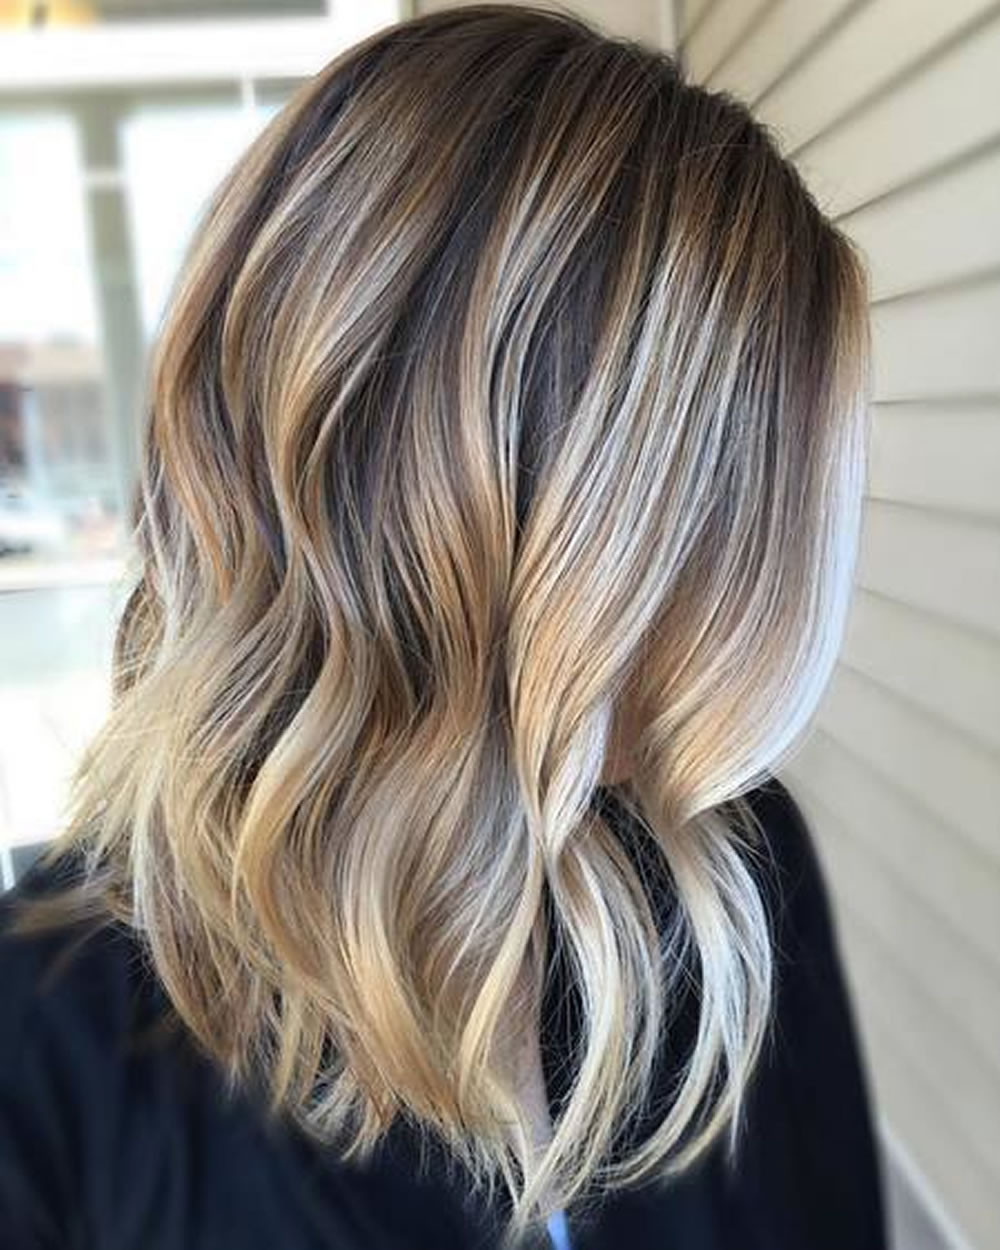 Best ideas about Ombre Hairstyles . Save or Pin Ombre Colored Short Hairstyles for Summer 2018 2019 Now.